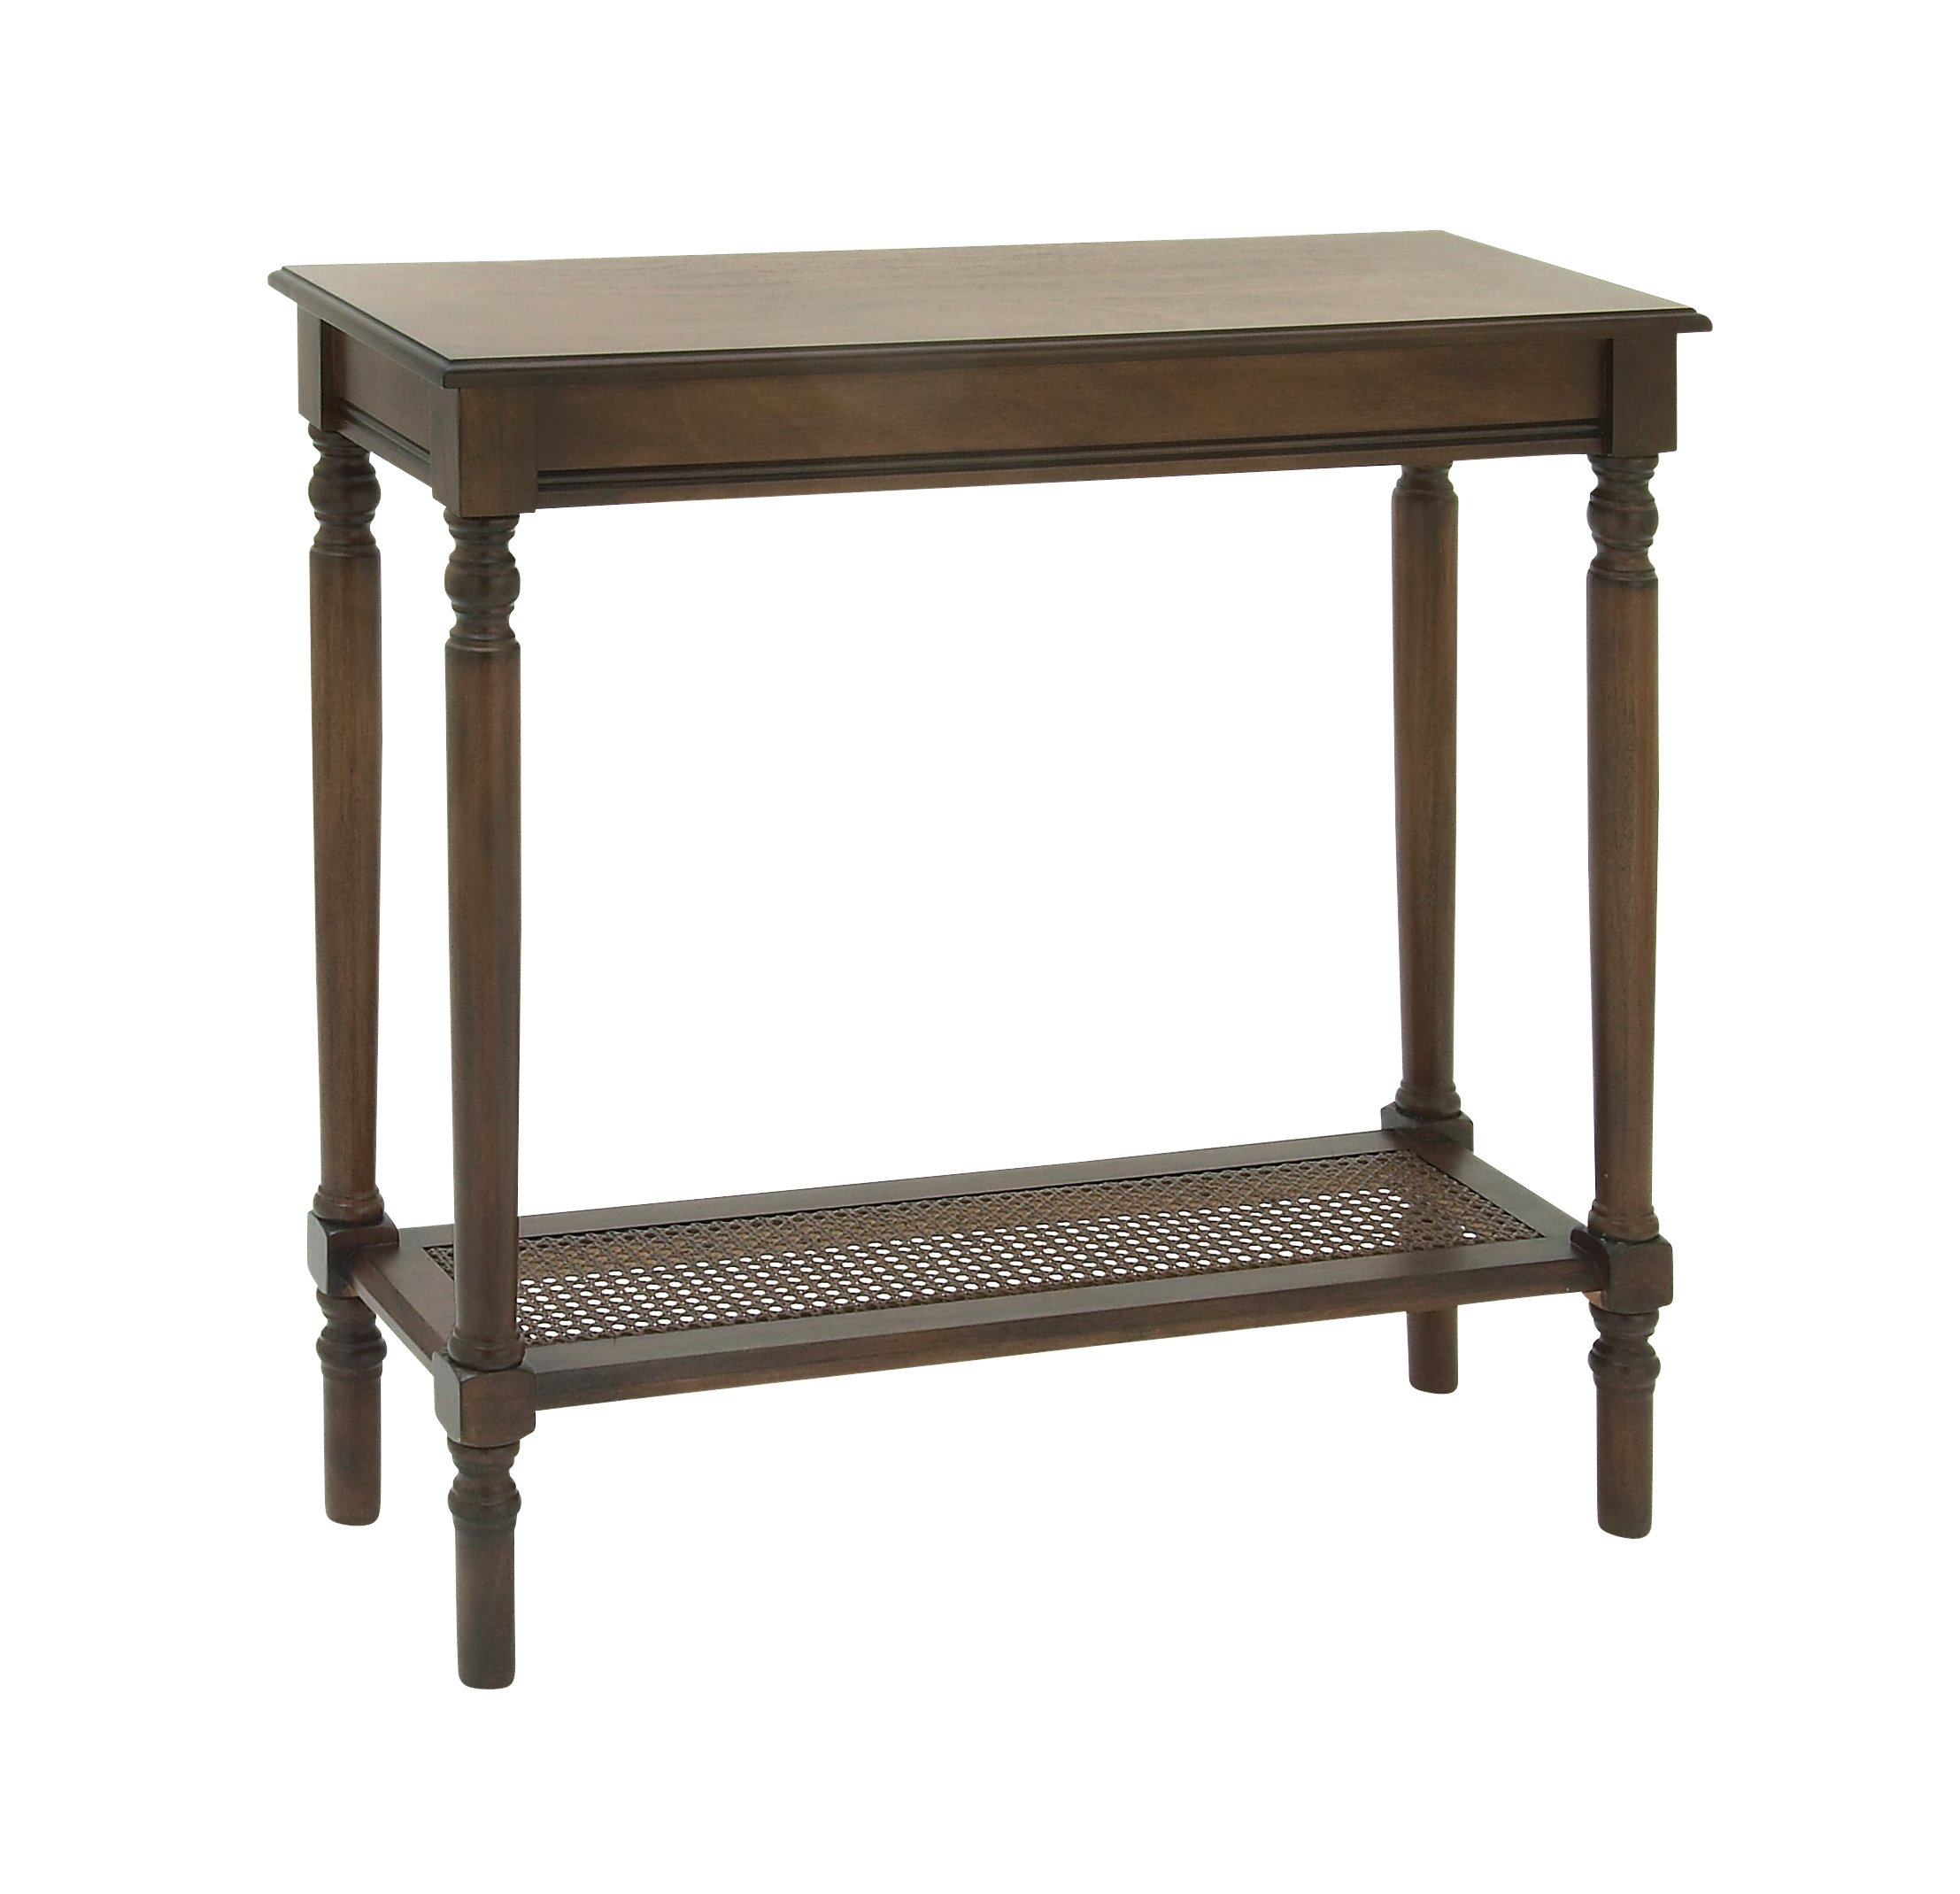 Deco 79 96382 Wood Console Table, 31'' x 32'', Brown